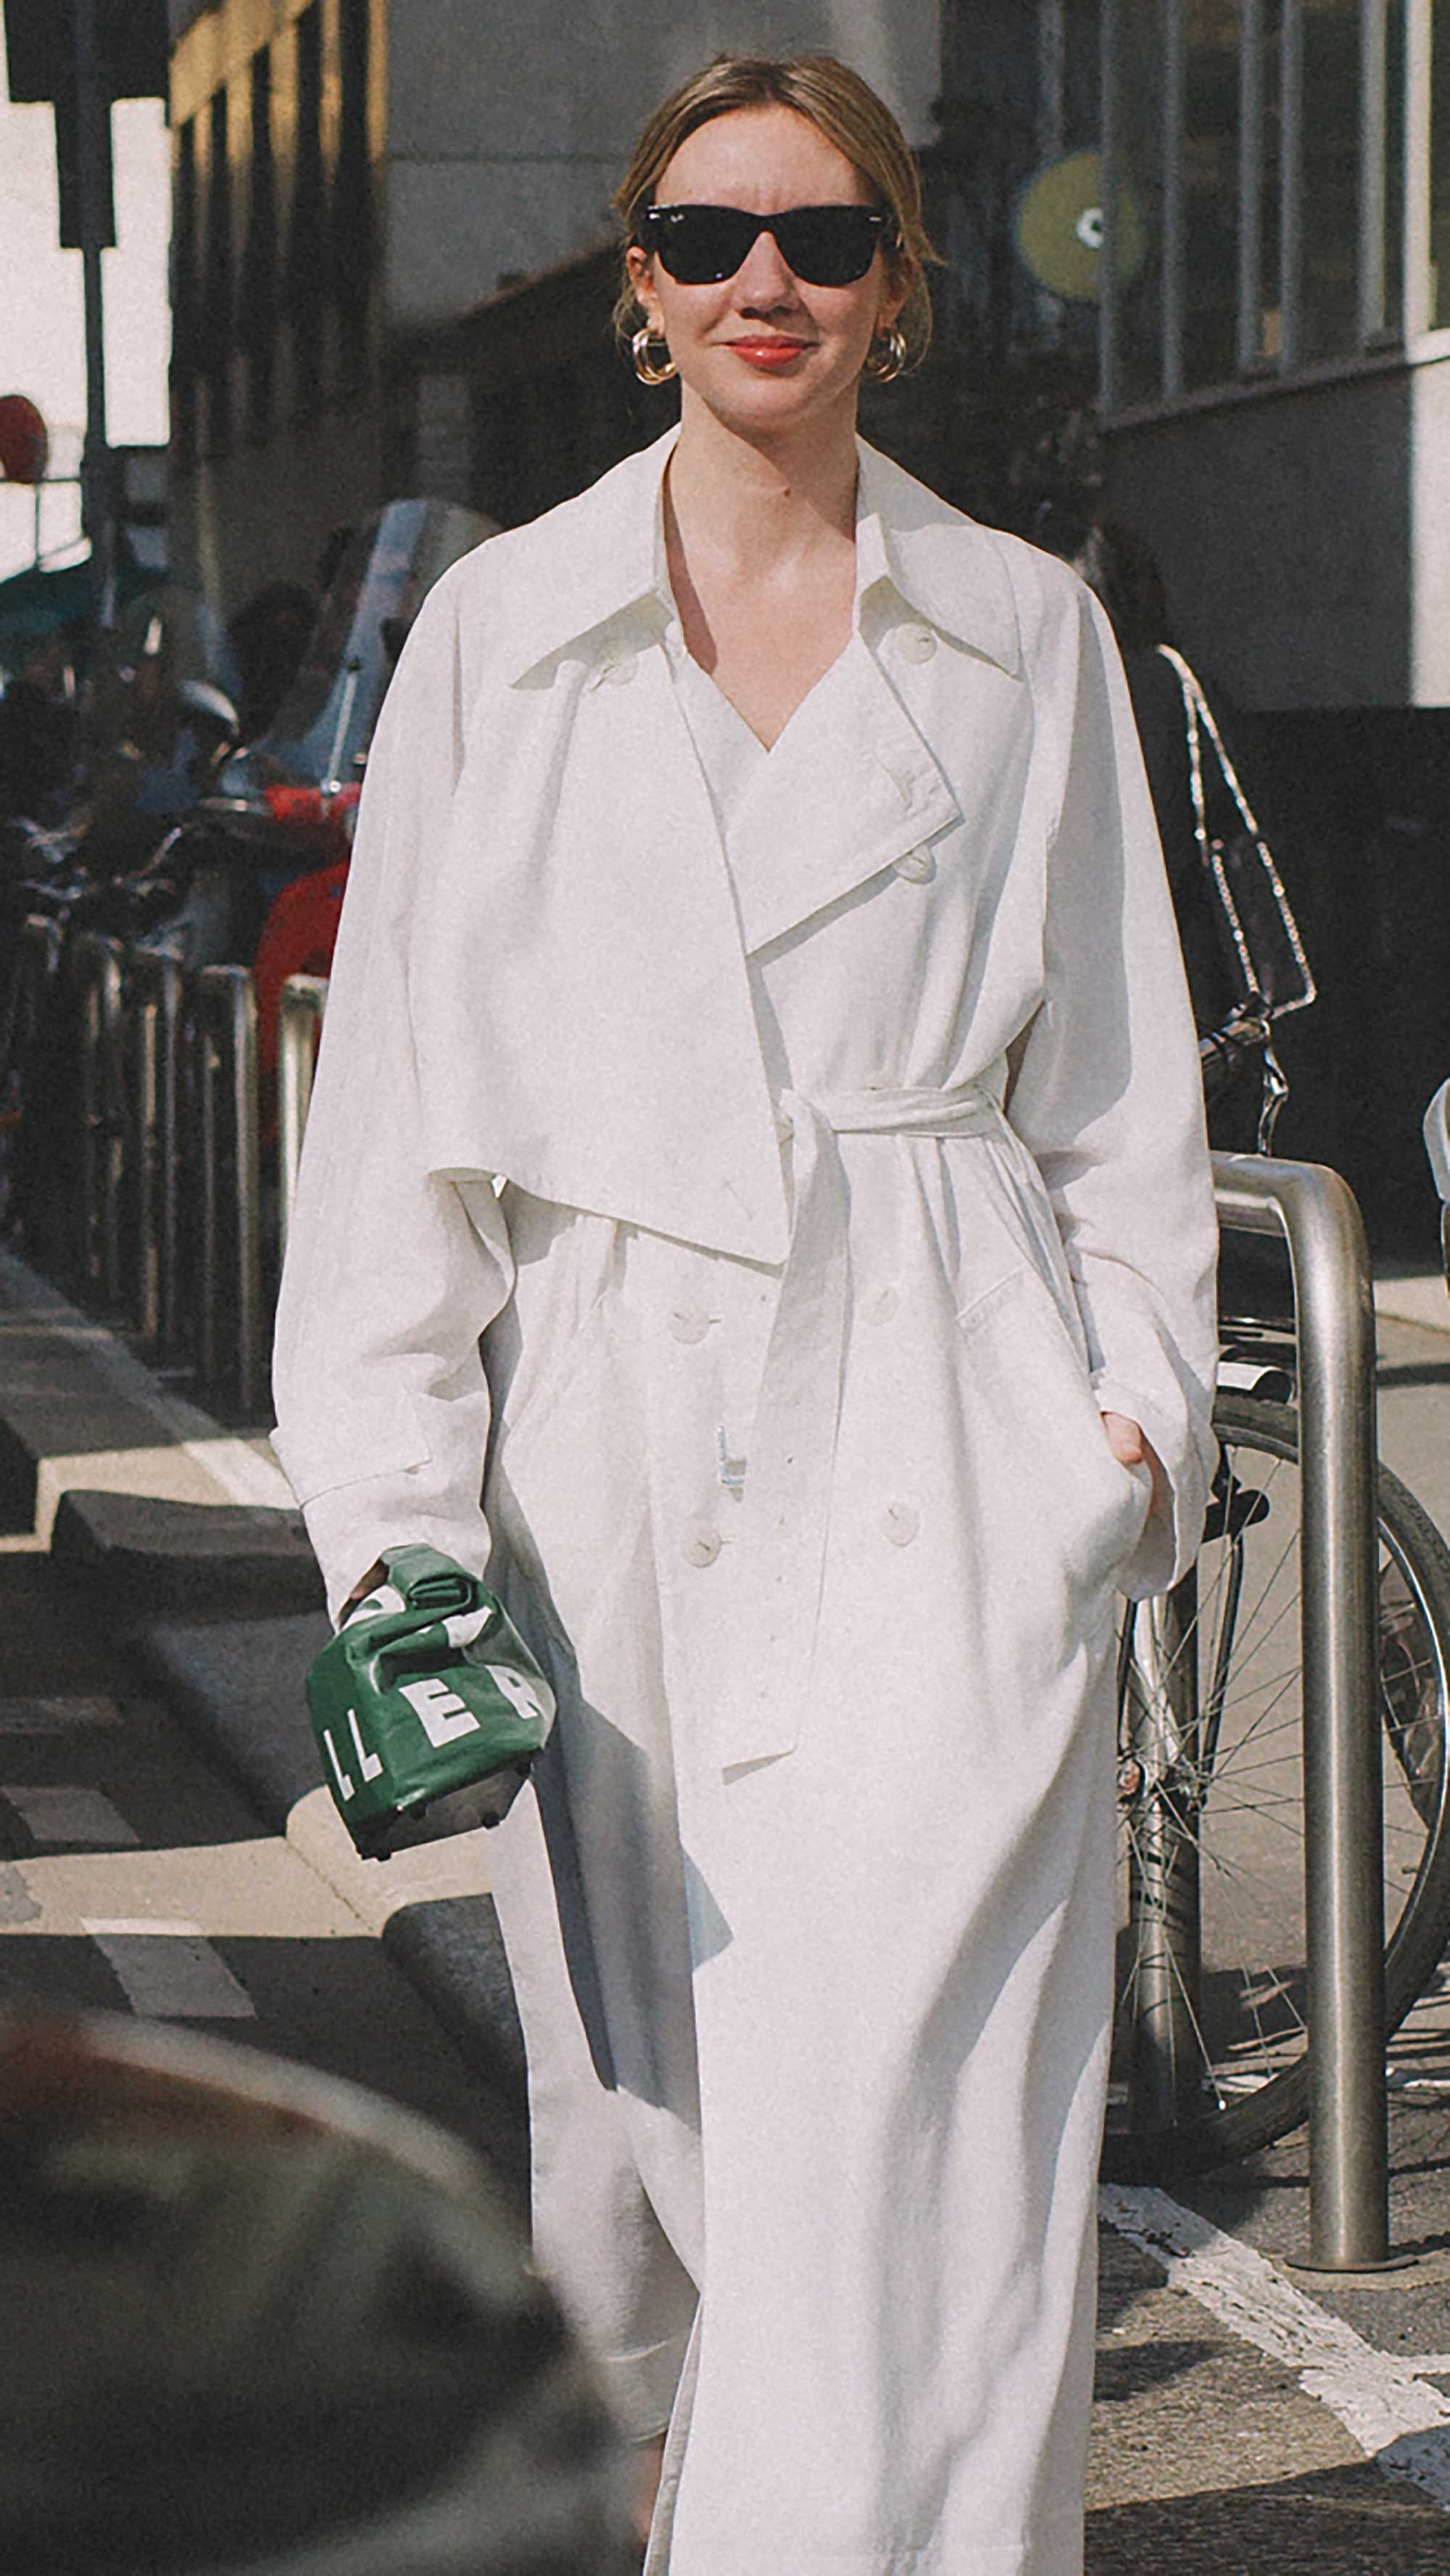 est outfits of Milan Fashion Week street style day two MFW FW19 65.jpg